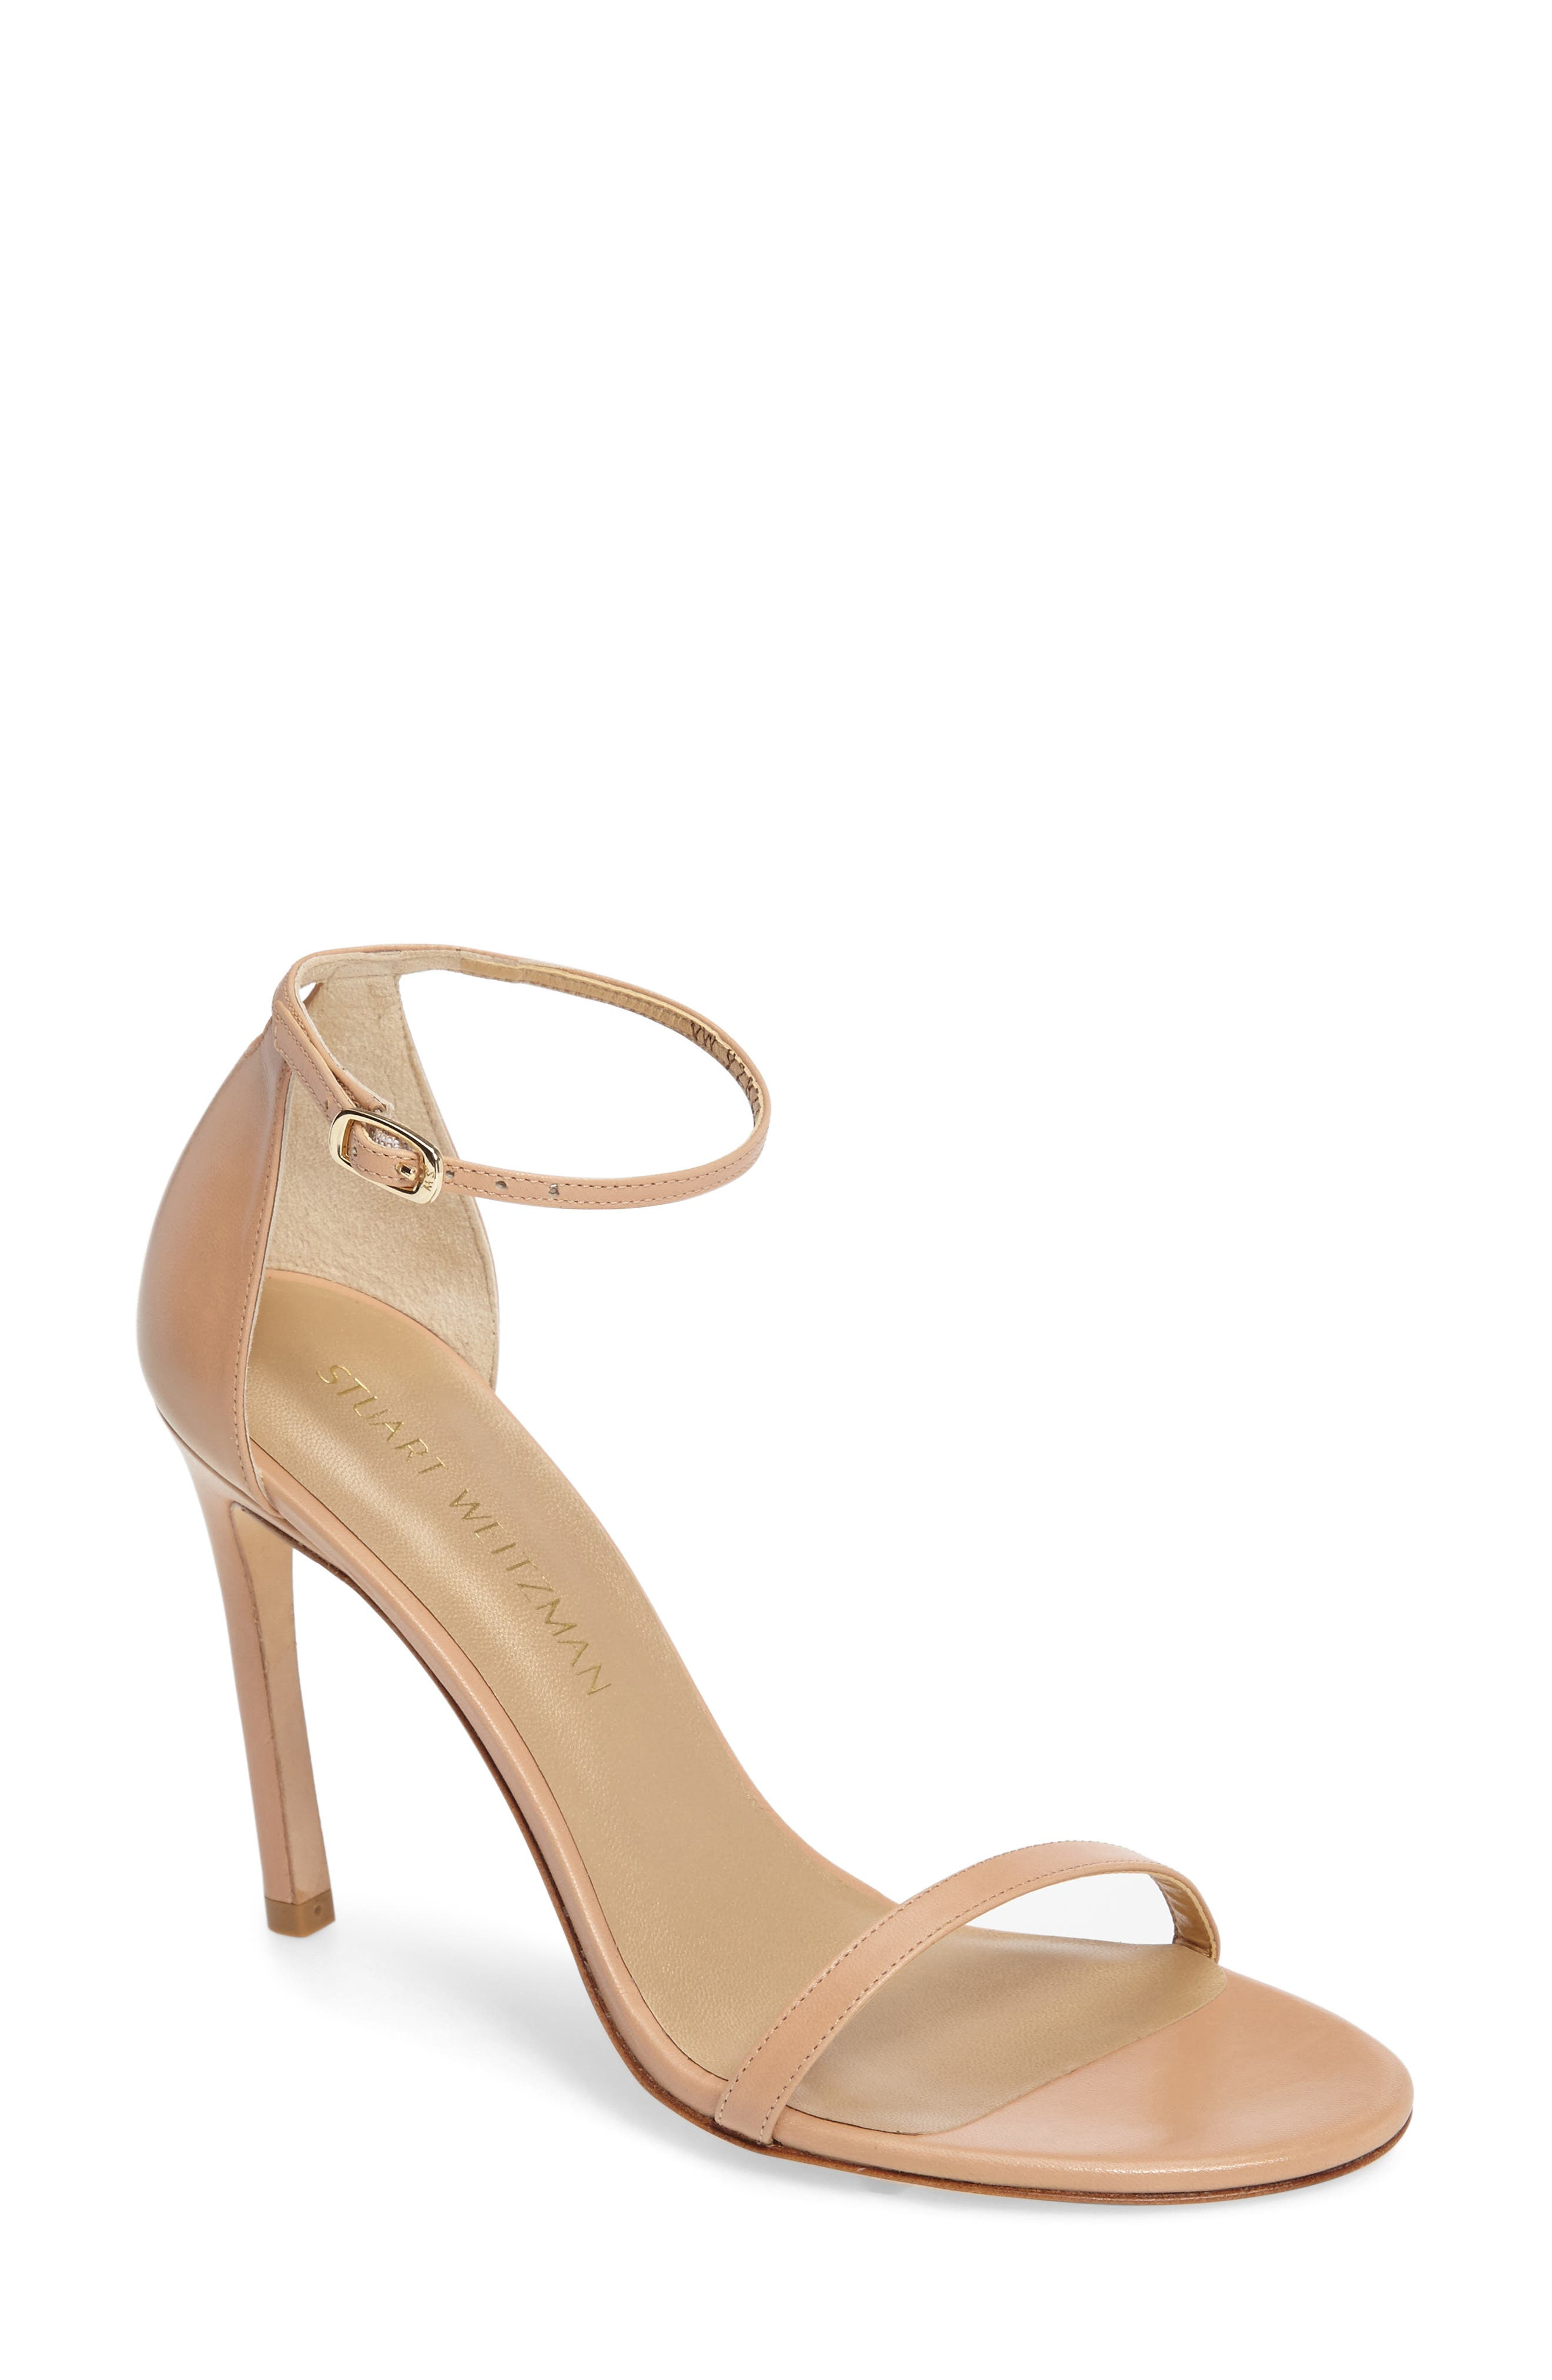 Nudistsong Ankle Strap Sandal,                             Main thumbnail 26, color,